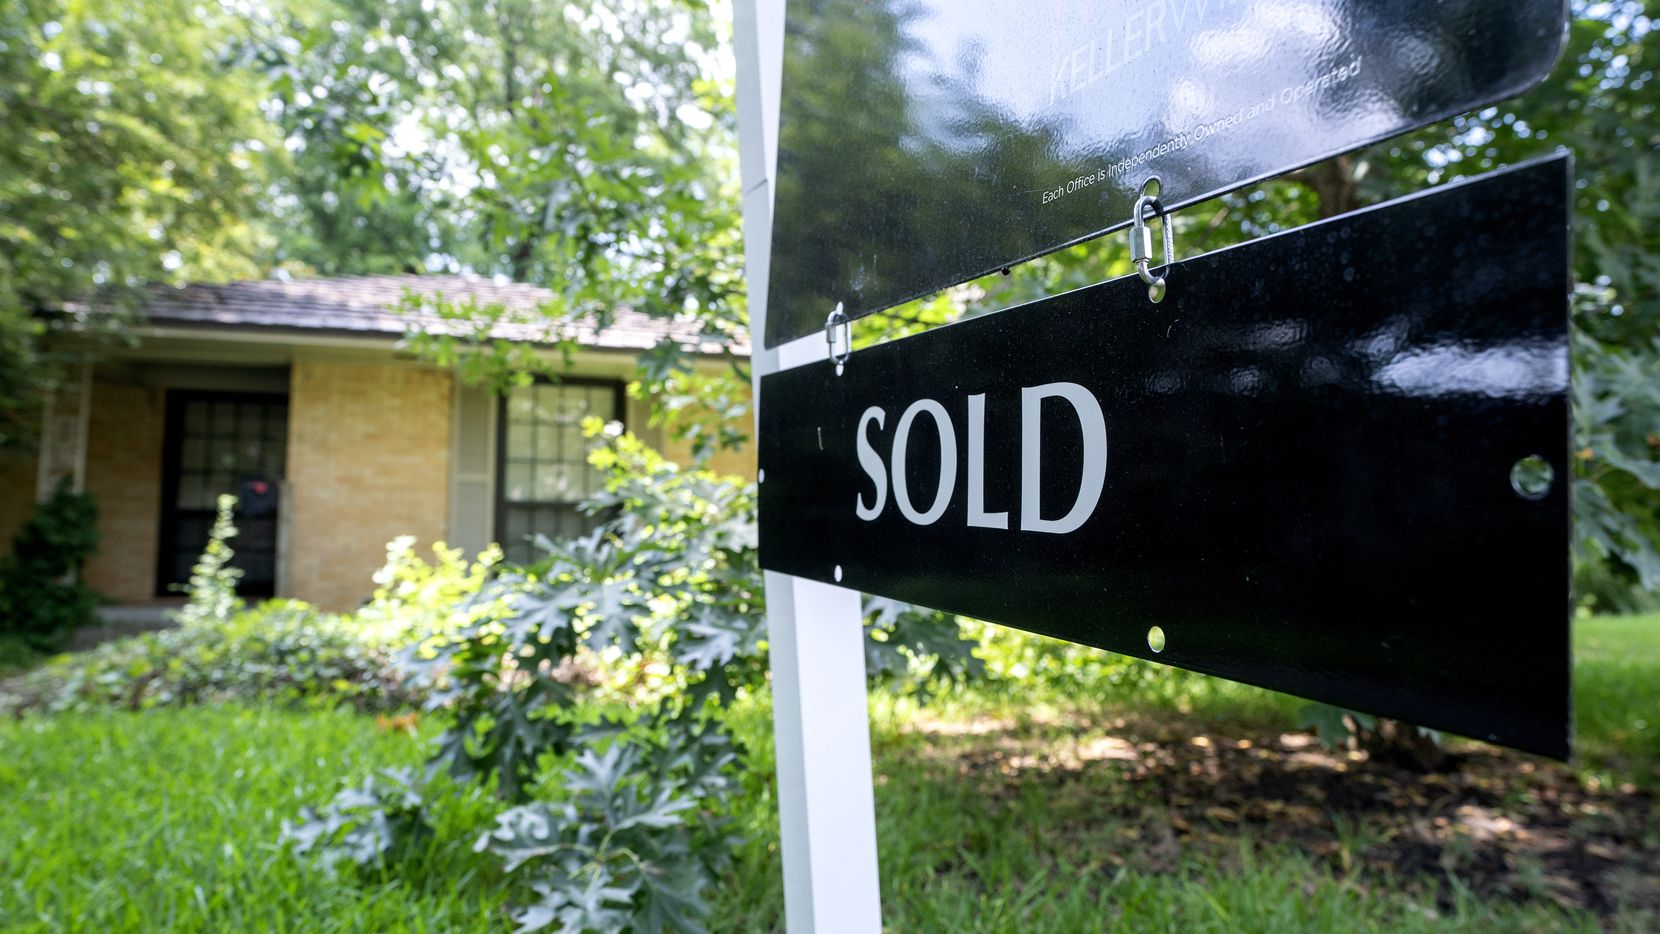 The D-FW area is seeing record home sales prices amid a severe shortage of housing.